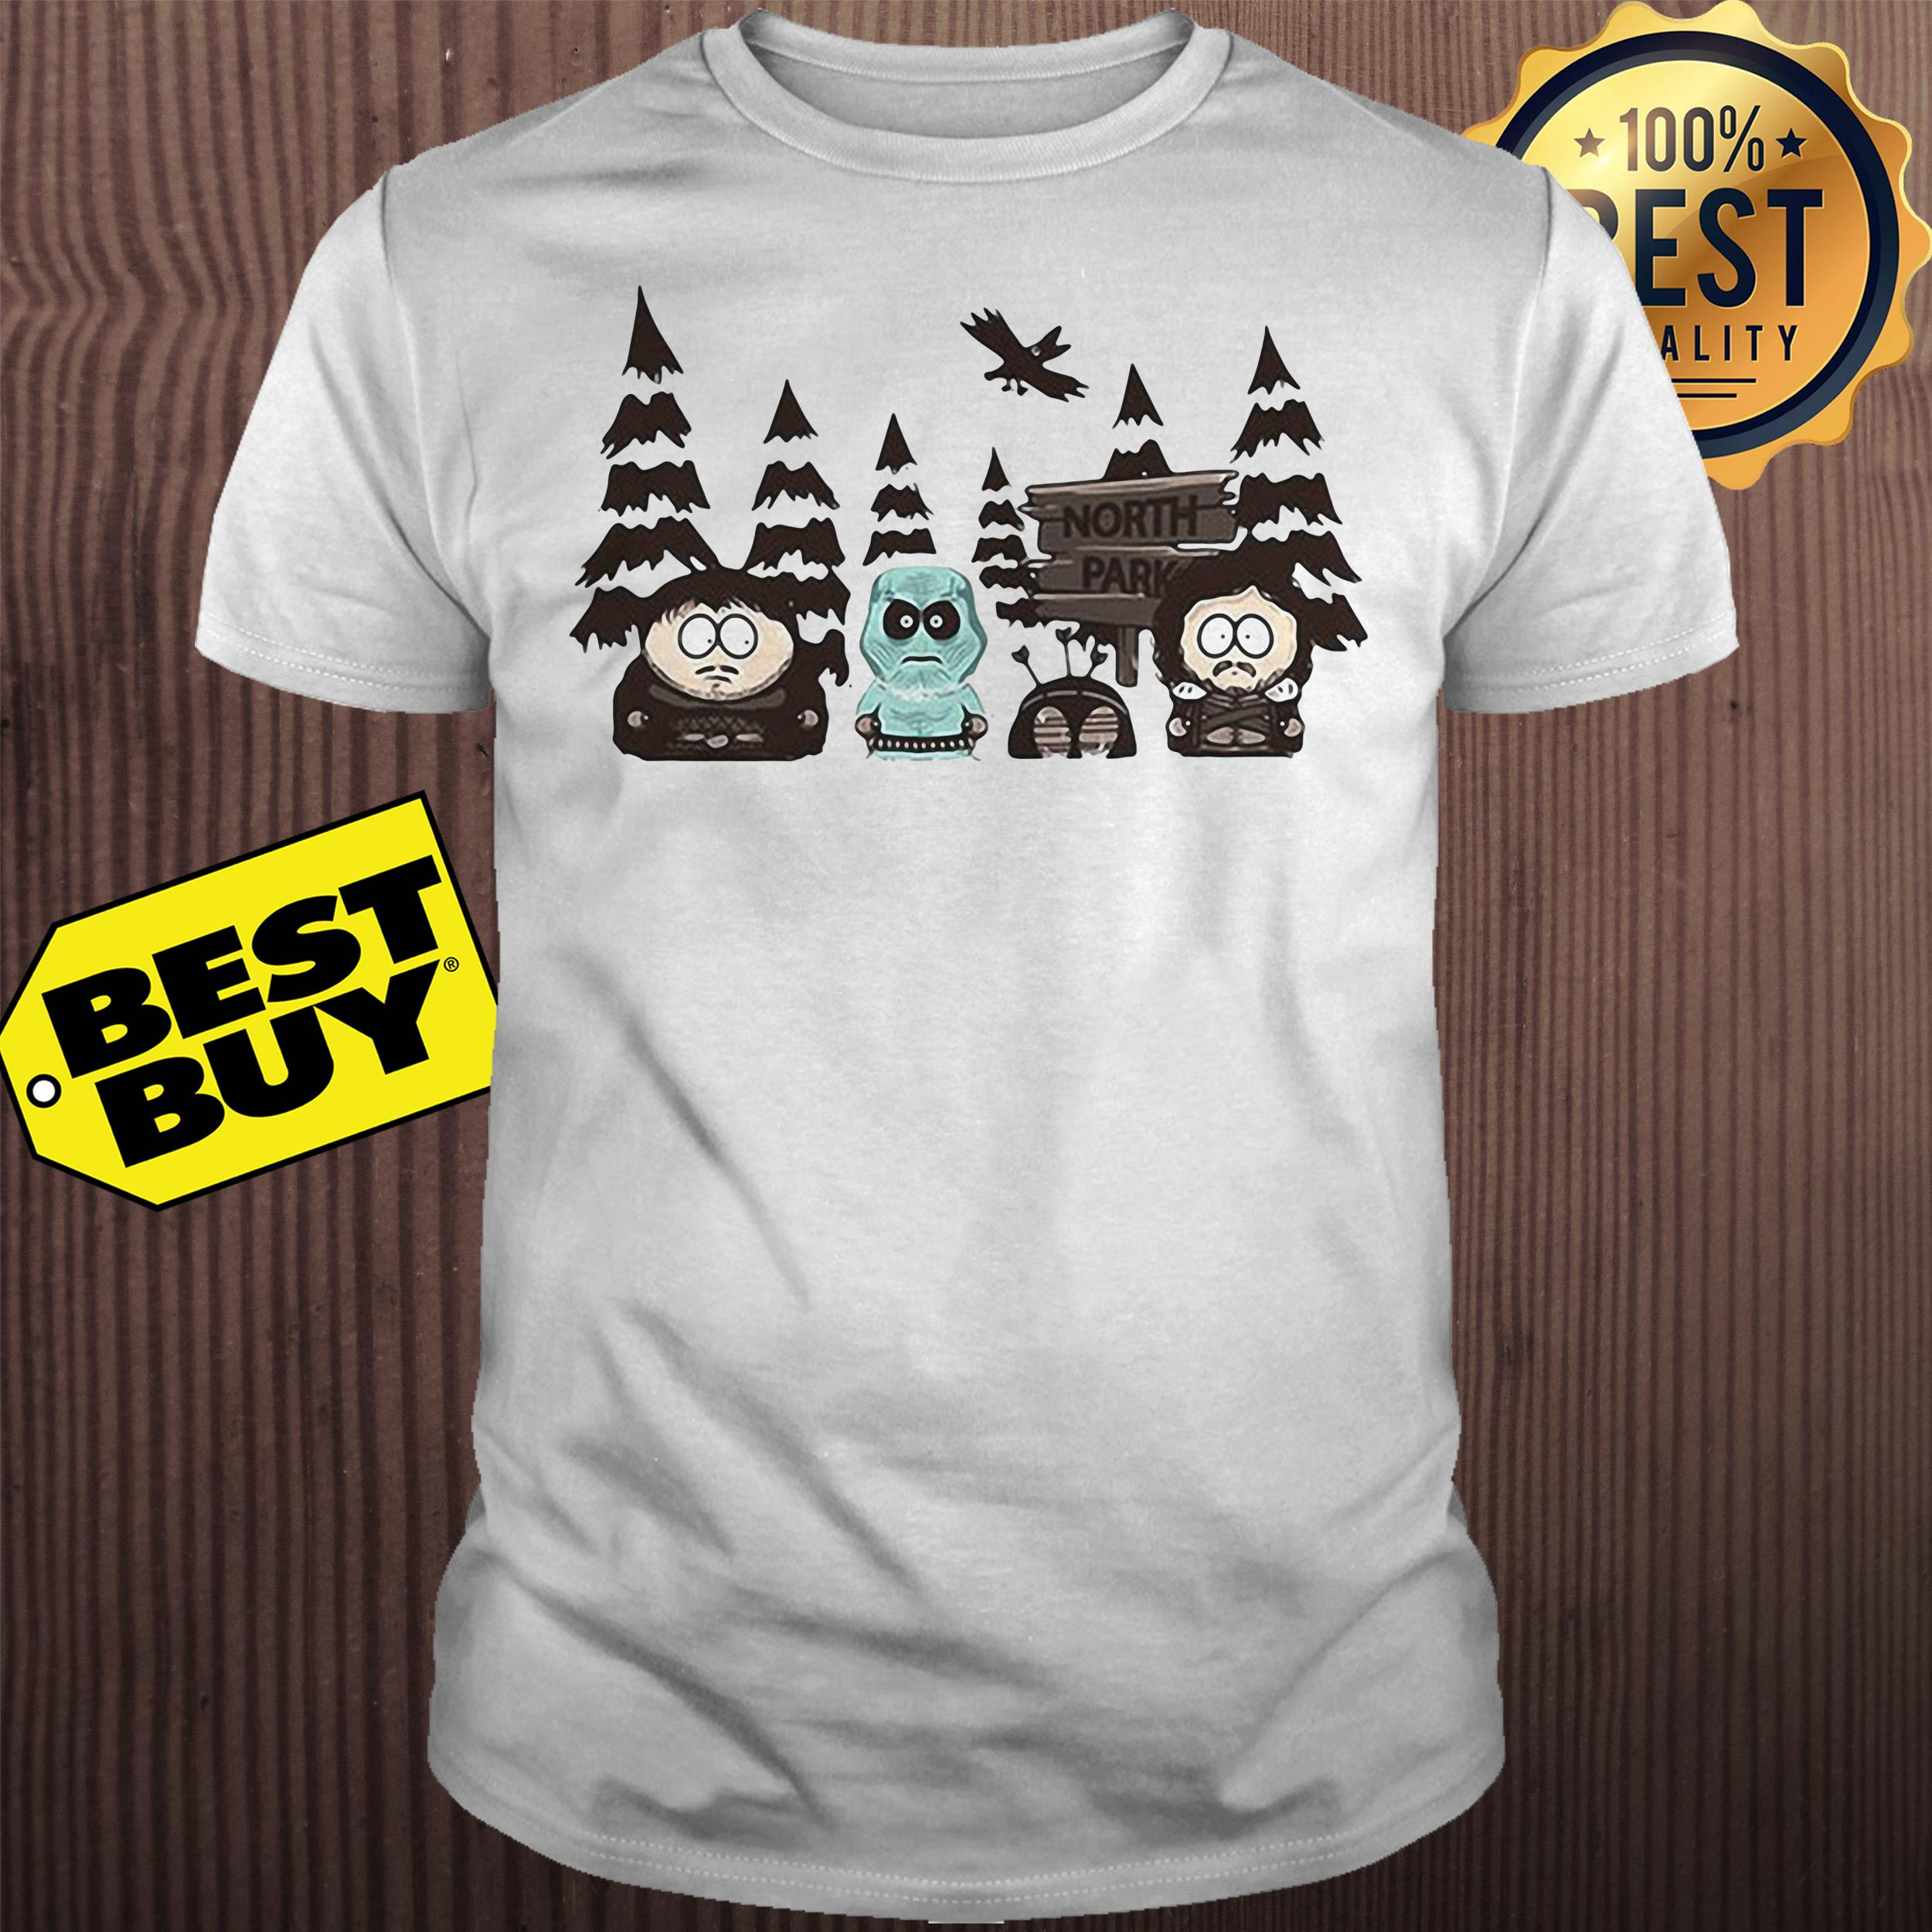 Game of Thrones South Park North Park shirt